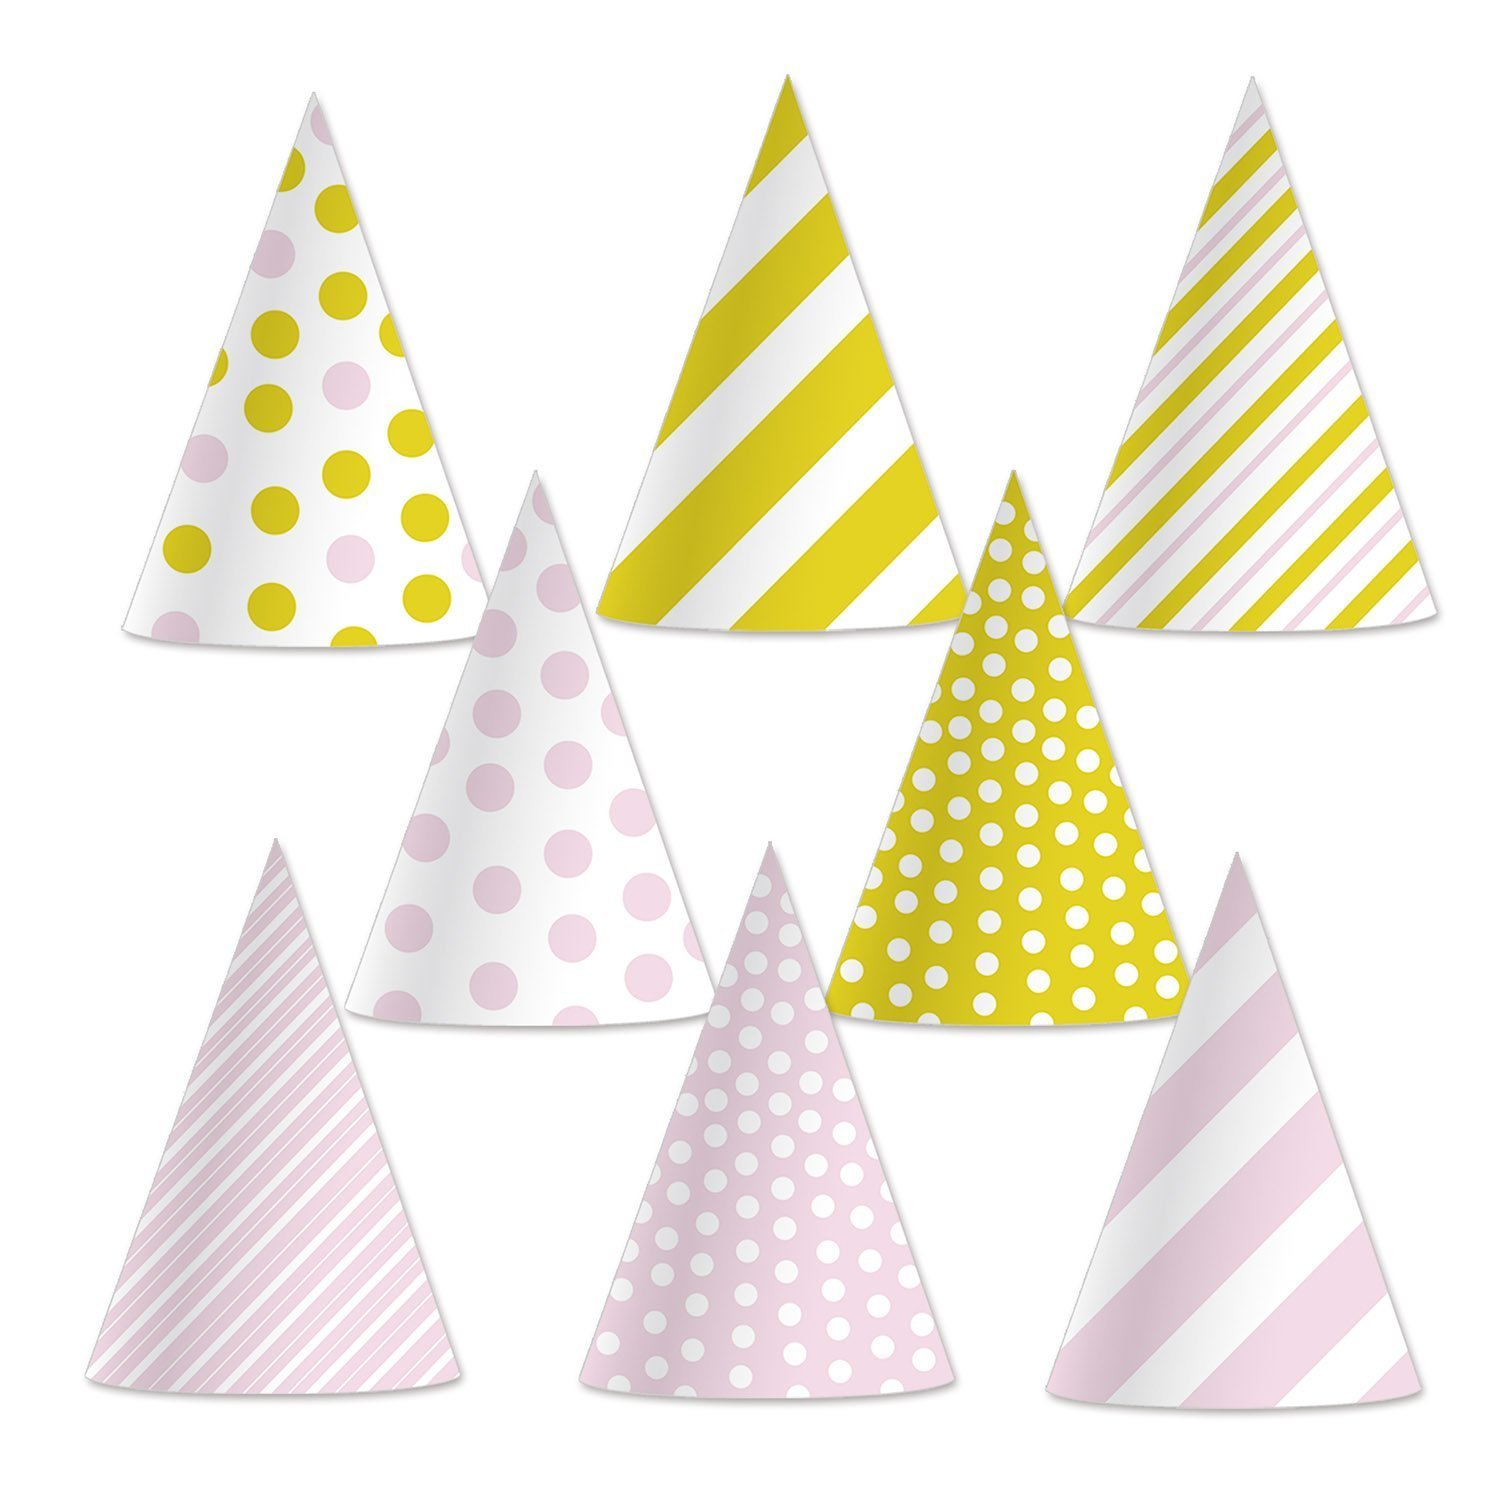 Beistle 60032 Pink and Gold Cone Hats (24 Pack), 6.5, Pink/Gold/White by Beistle